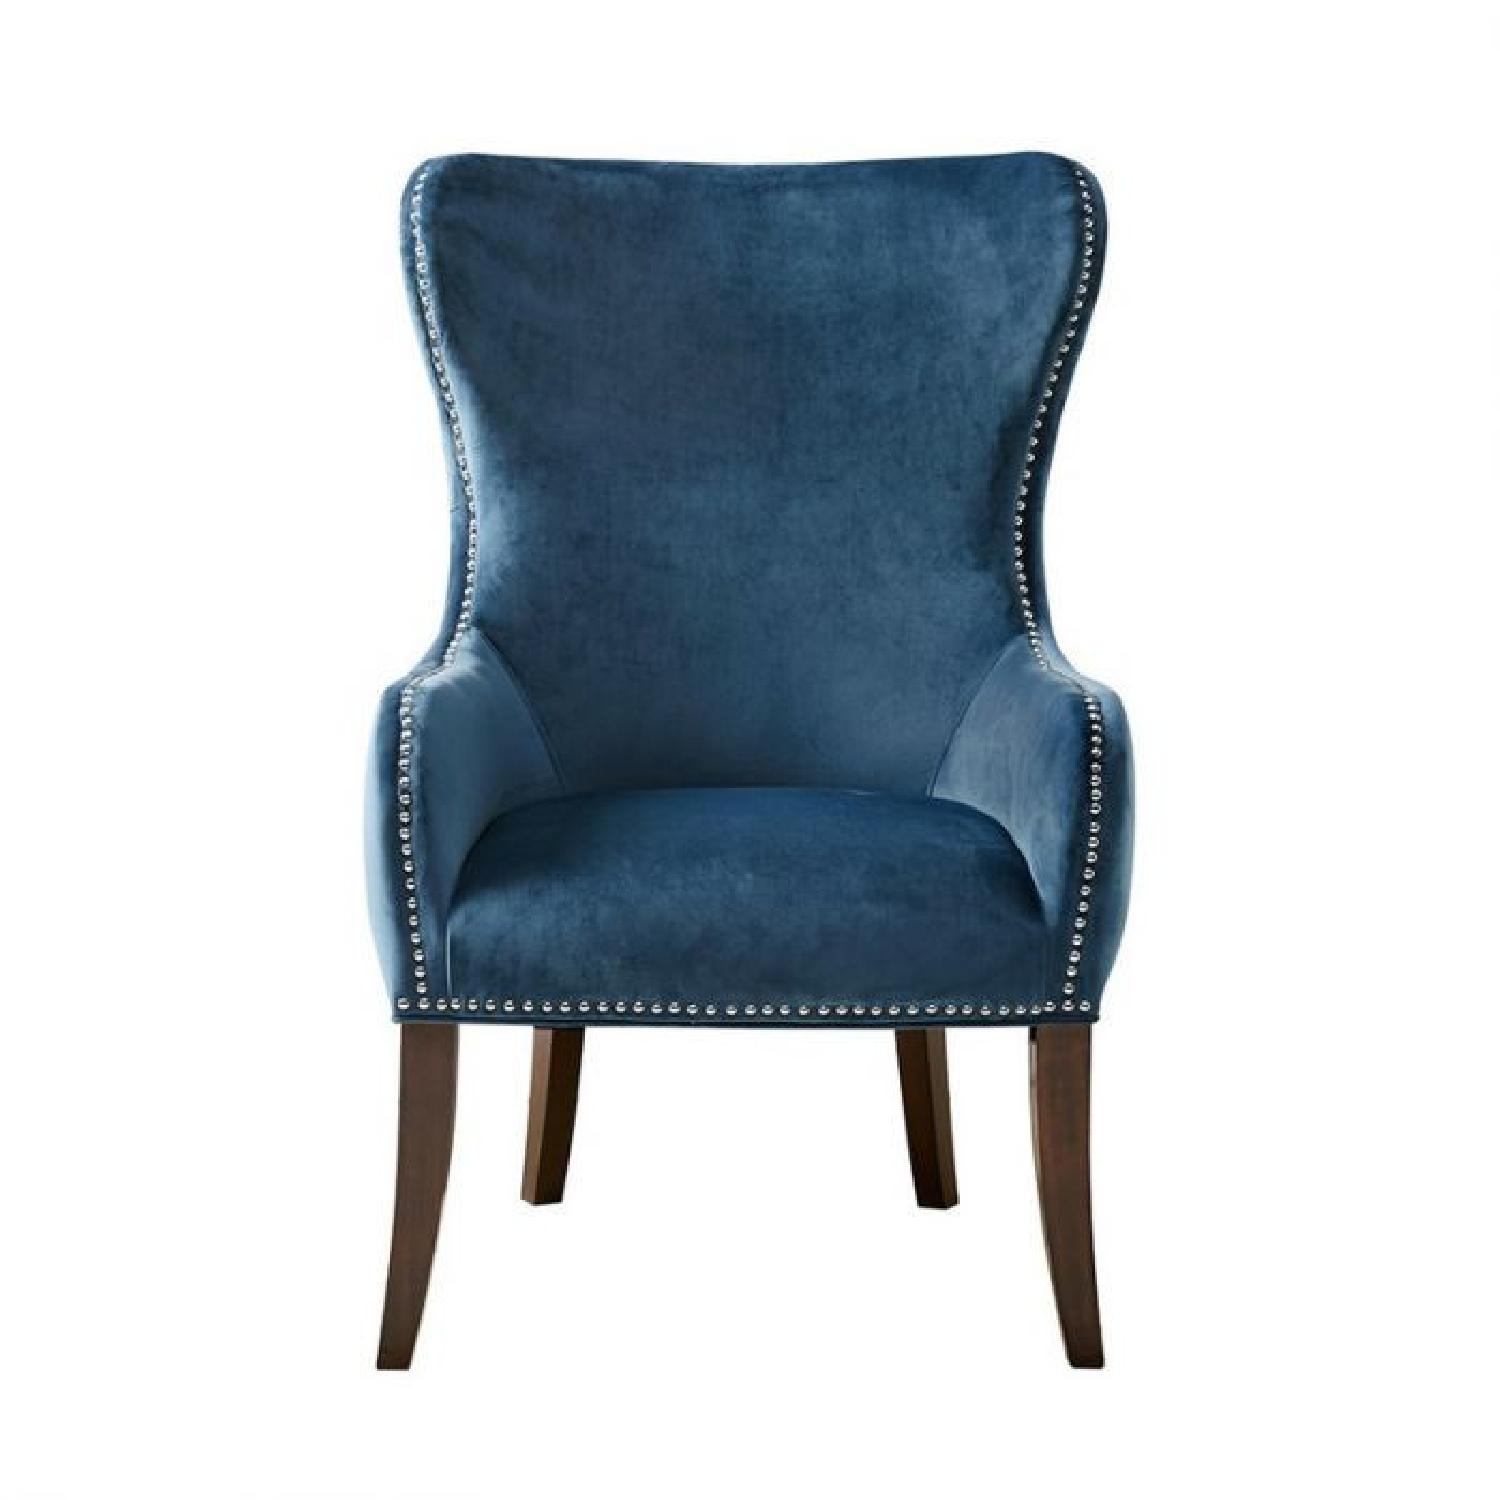 Madison Park Statement Armchairs - image-5